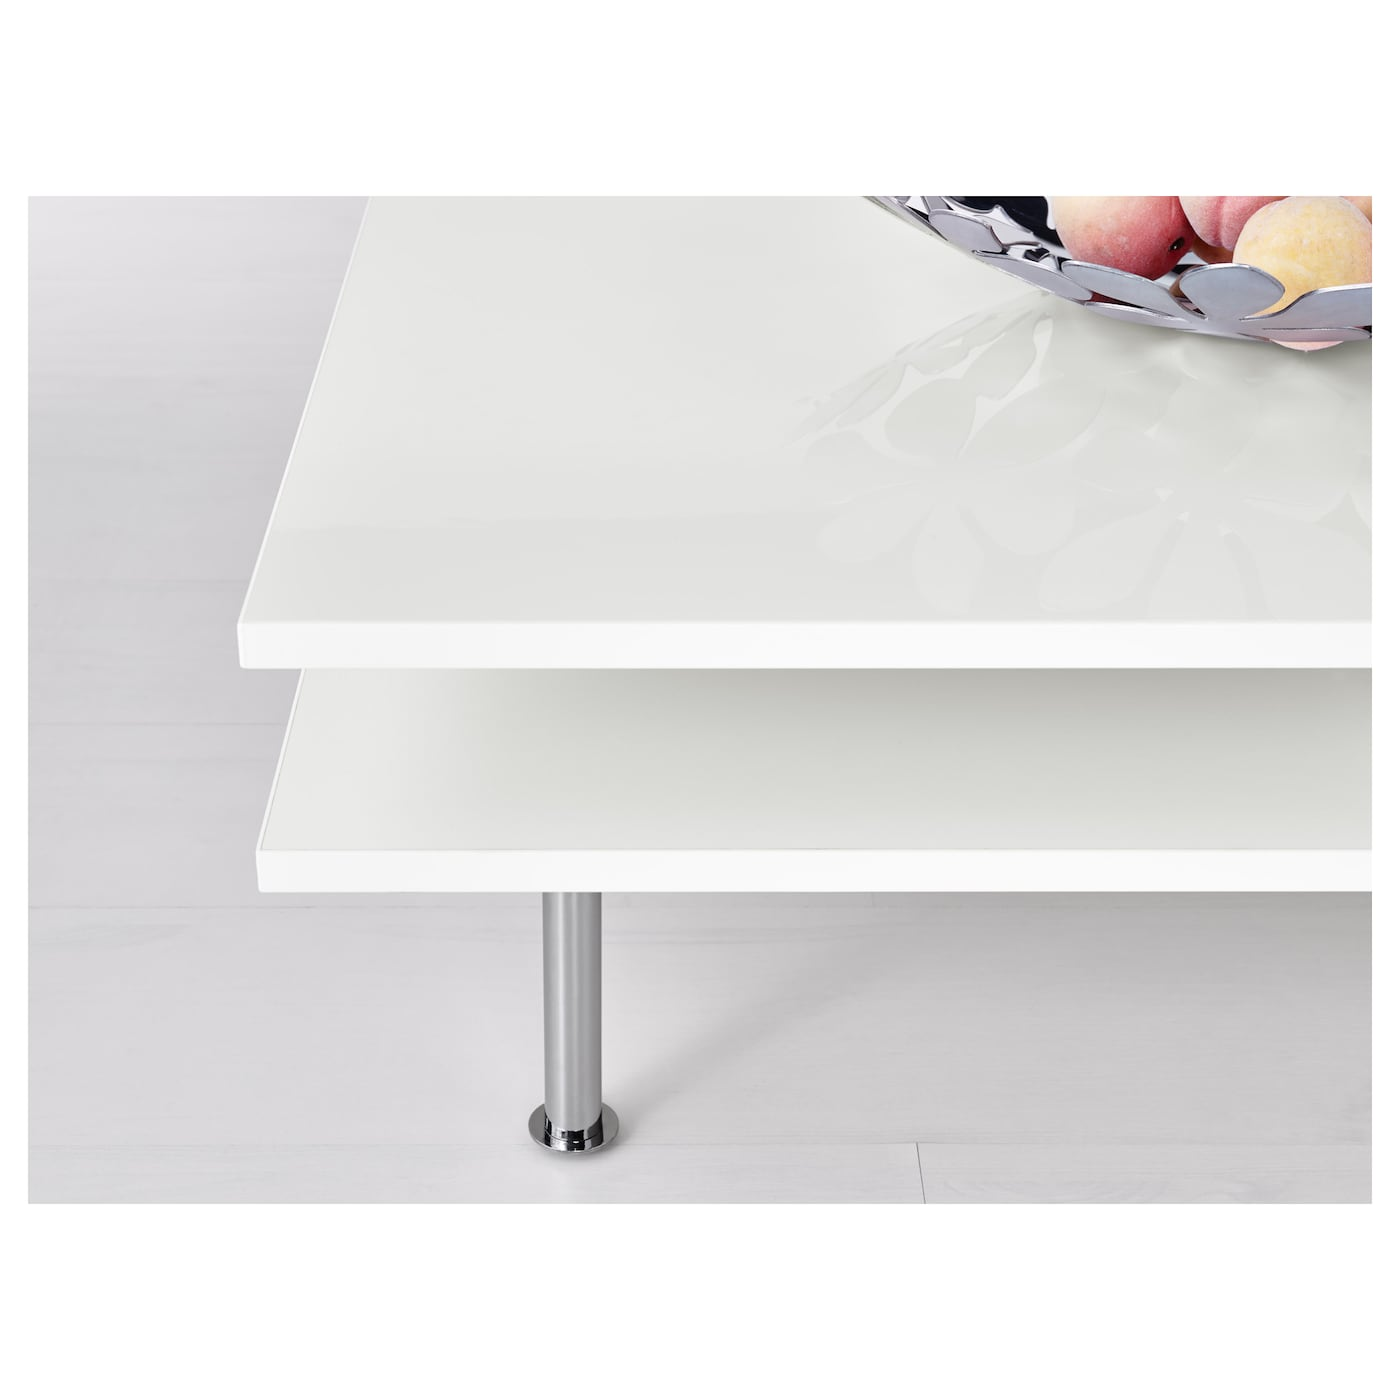 Ikea Tofteryd Coffee Table Smooth Running Drawers For Storing Remote Controls Magazines Etc